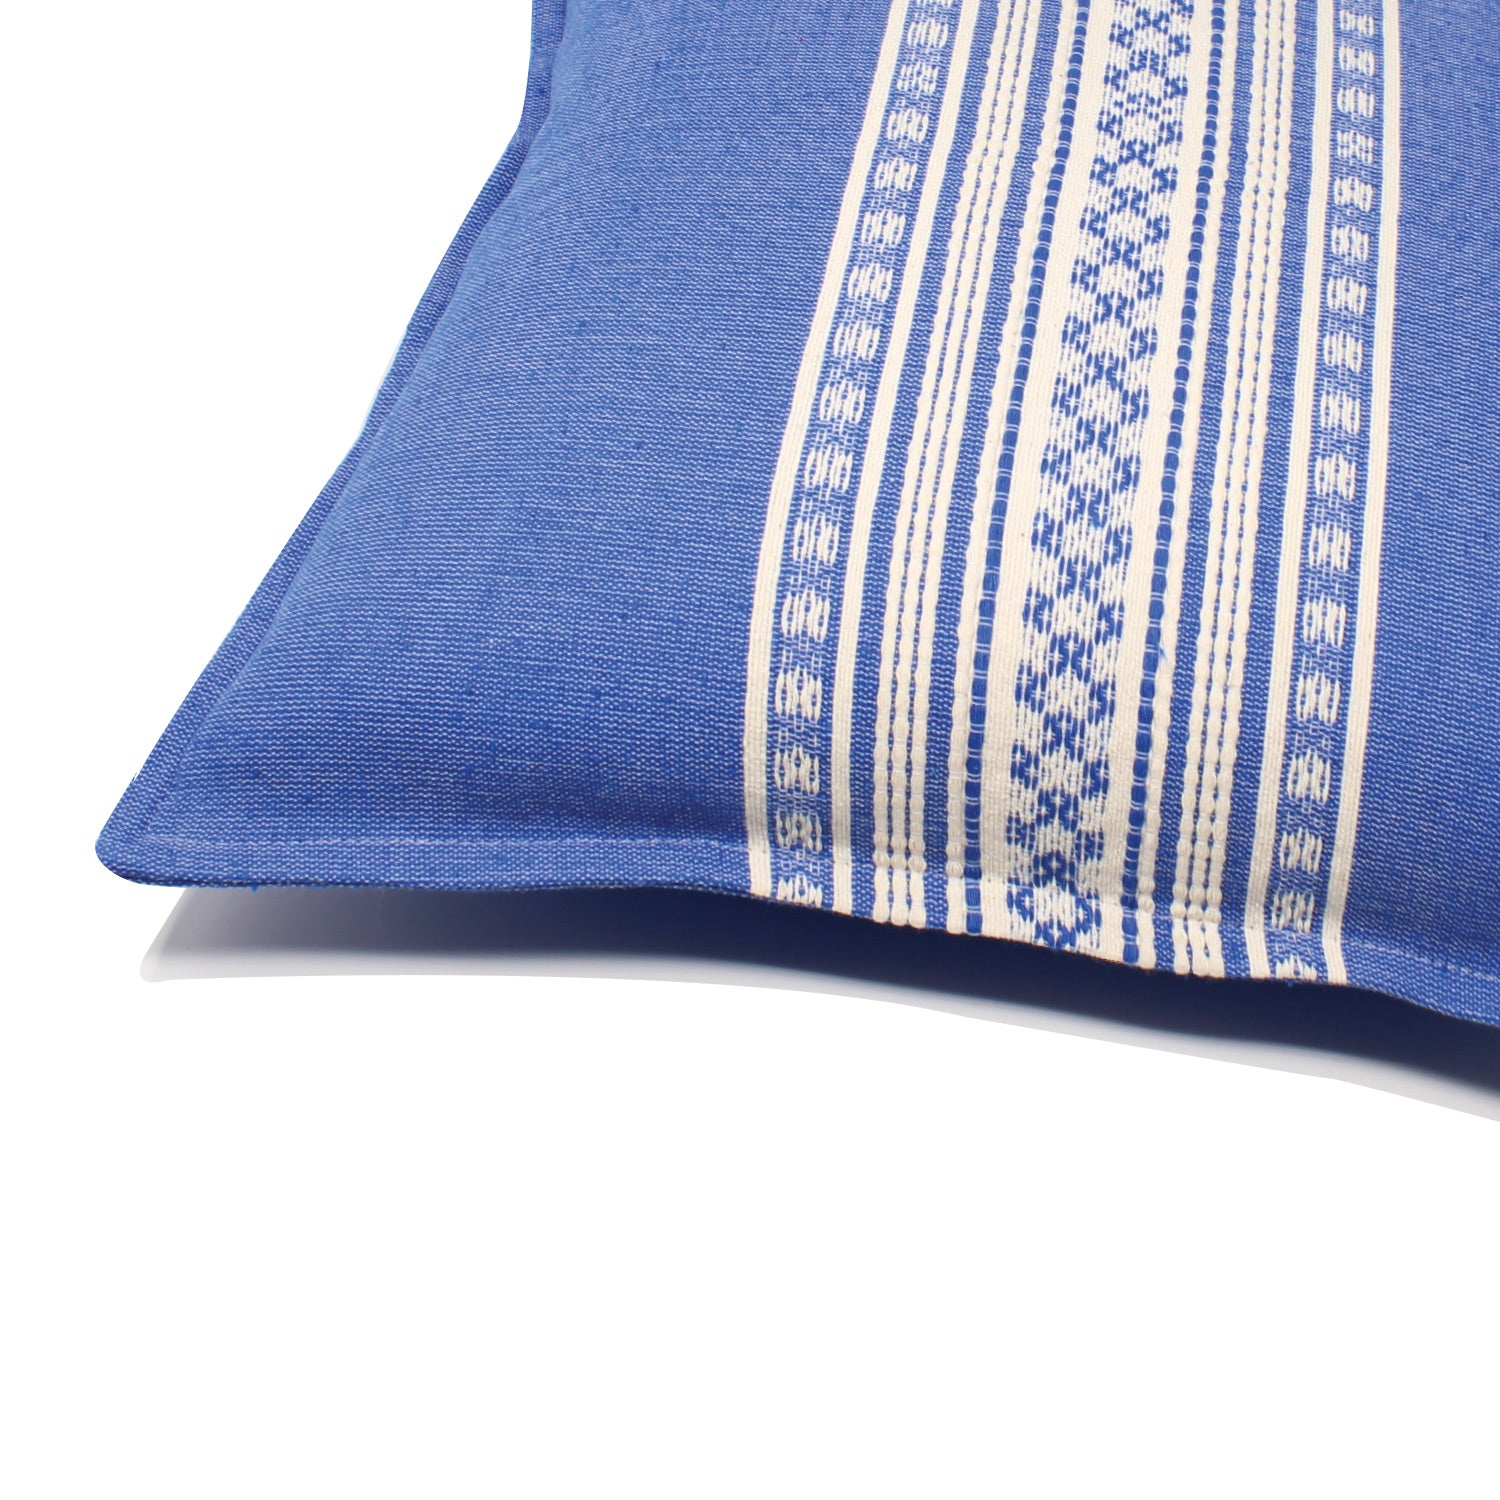 Nubari Handwoven Pillow - Indigo Blue